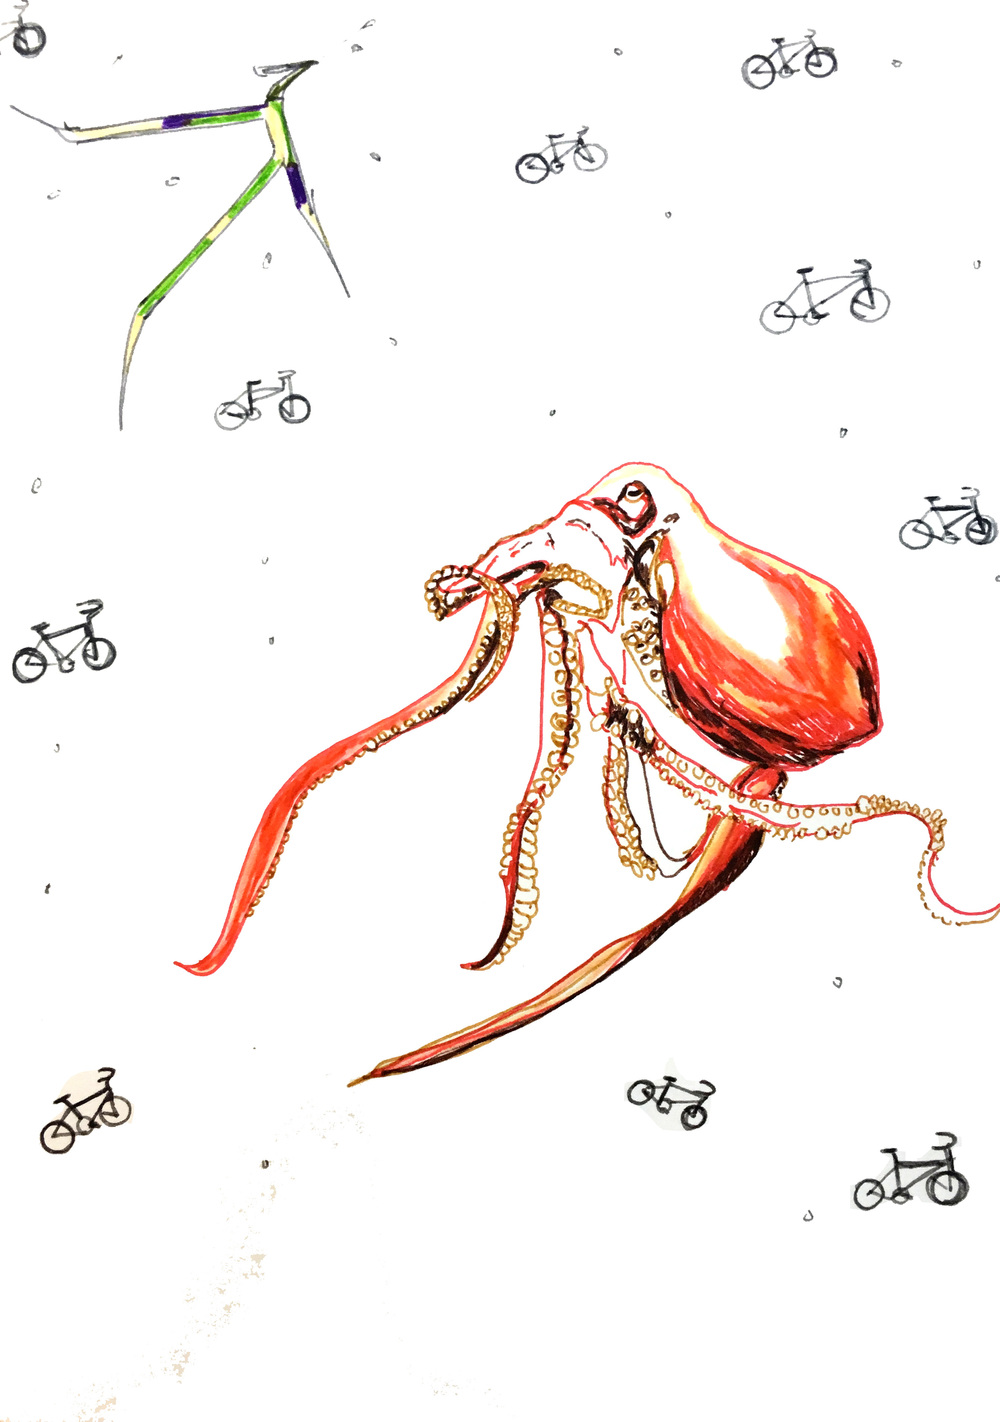 Octopus cycler, 2015, fine liner on paper, 14.8 x 21 cm